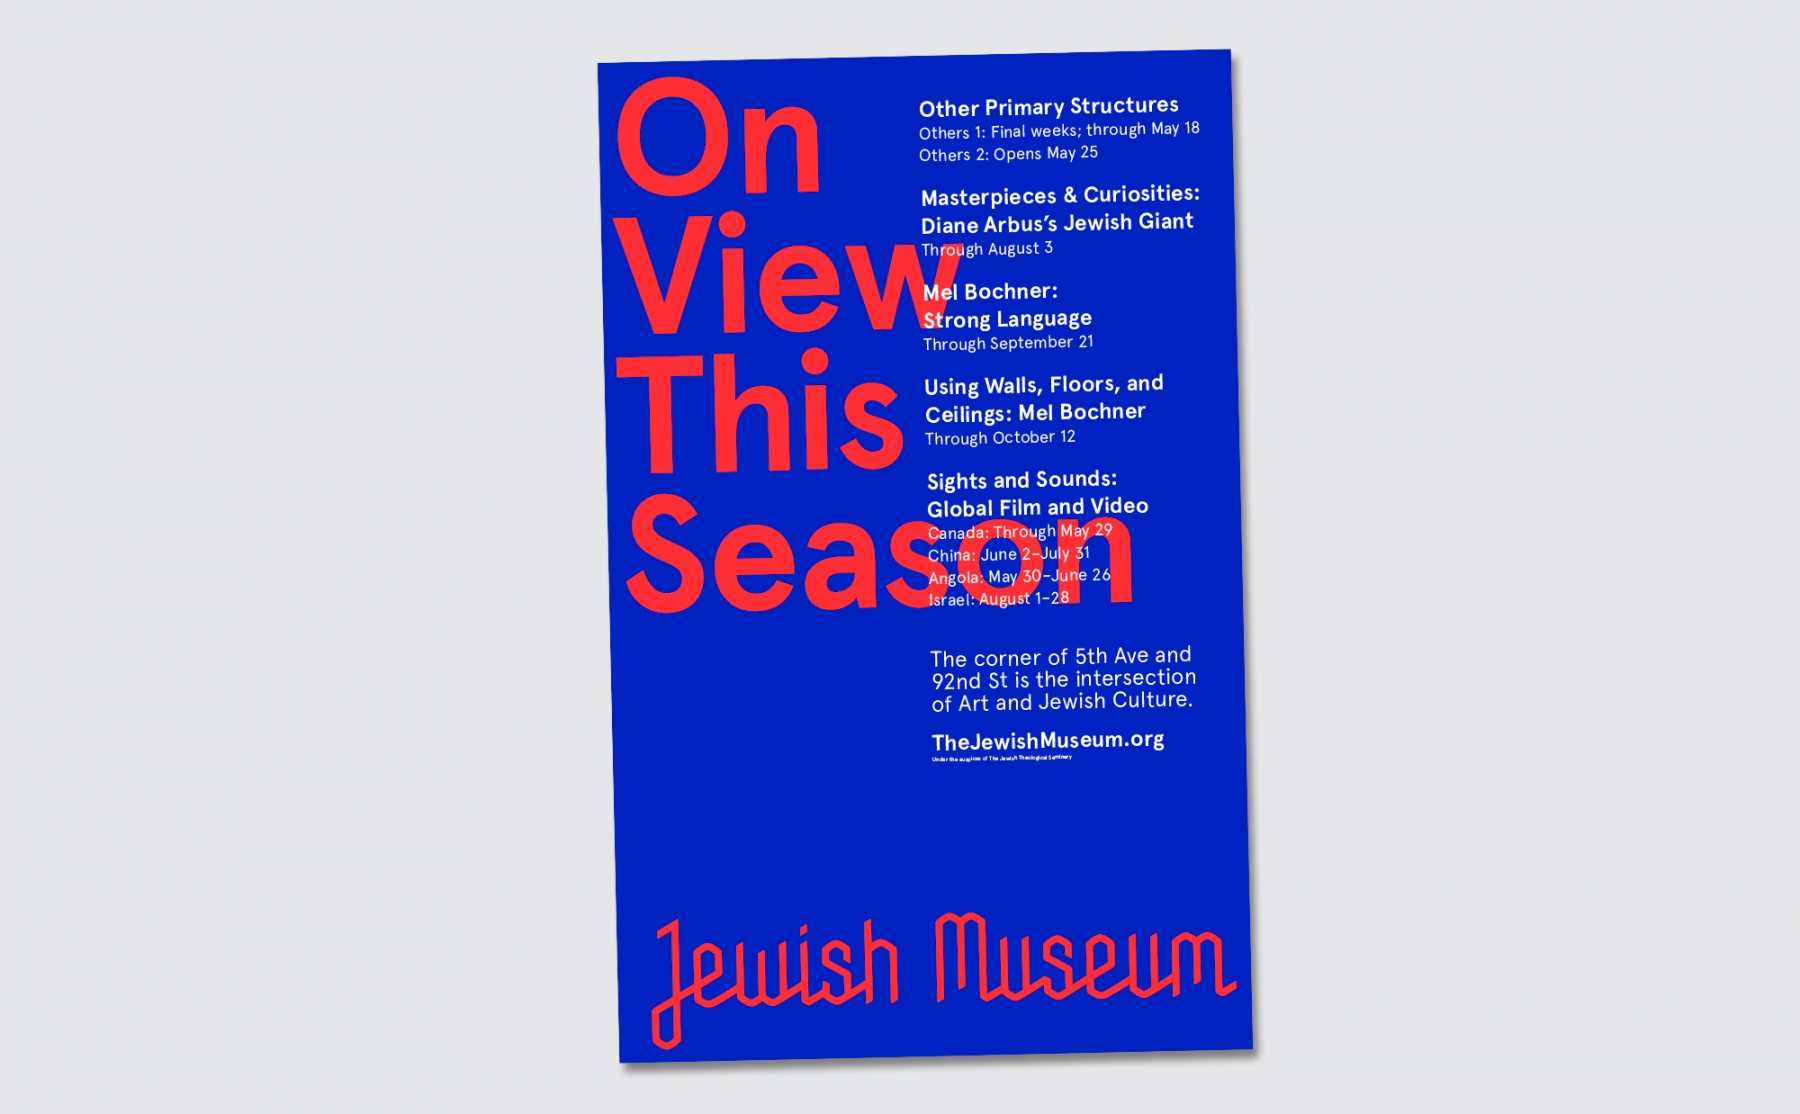 Sagmeister And Walsh For The NY Jewish Museum: JXJM-NYC007.jpg